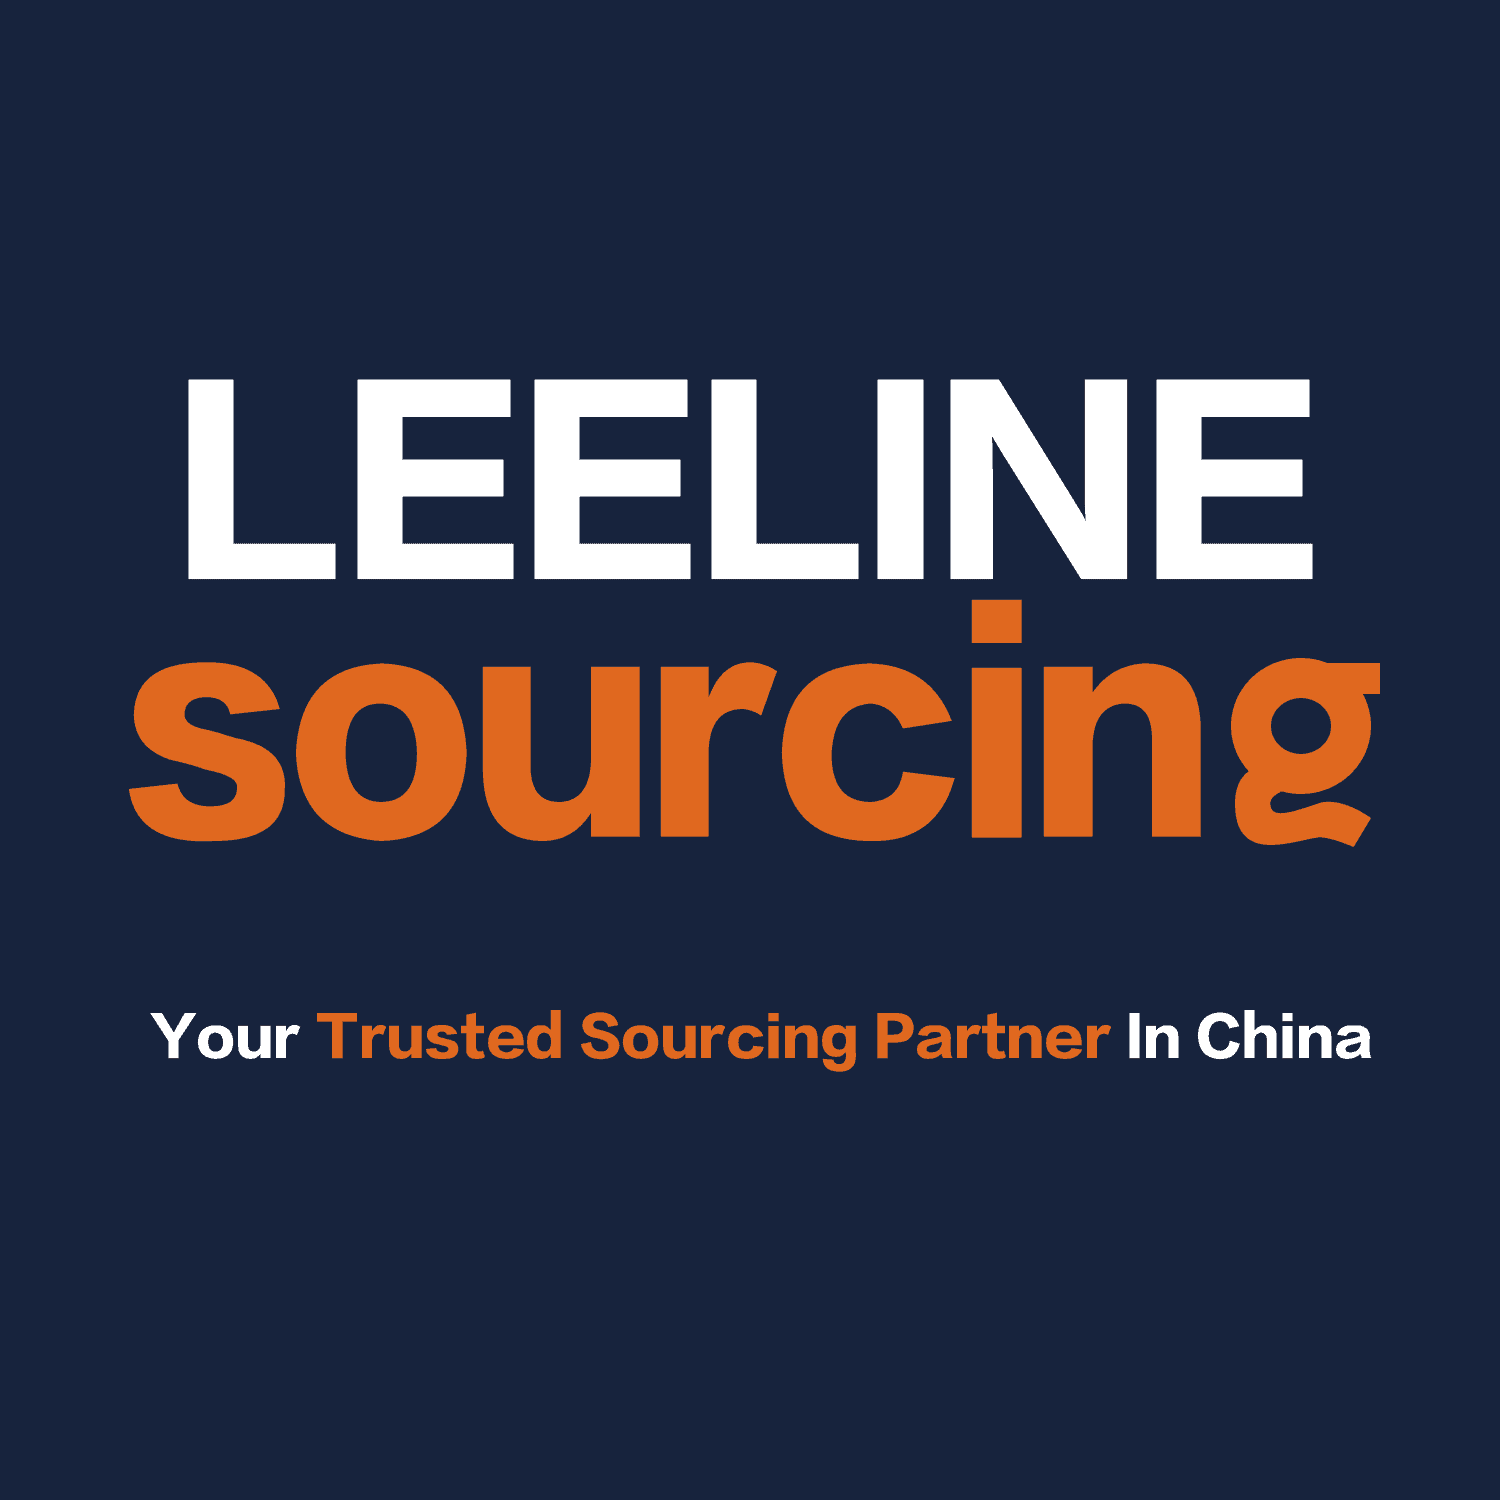 LeelineSourcing – Your Trusted Sourcing Partner in China